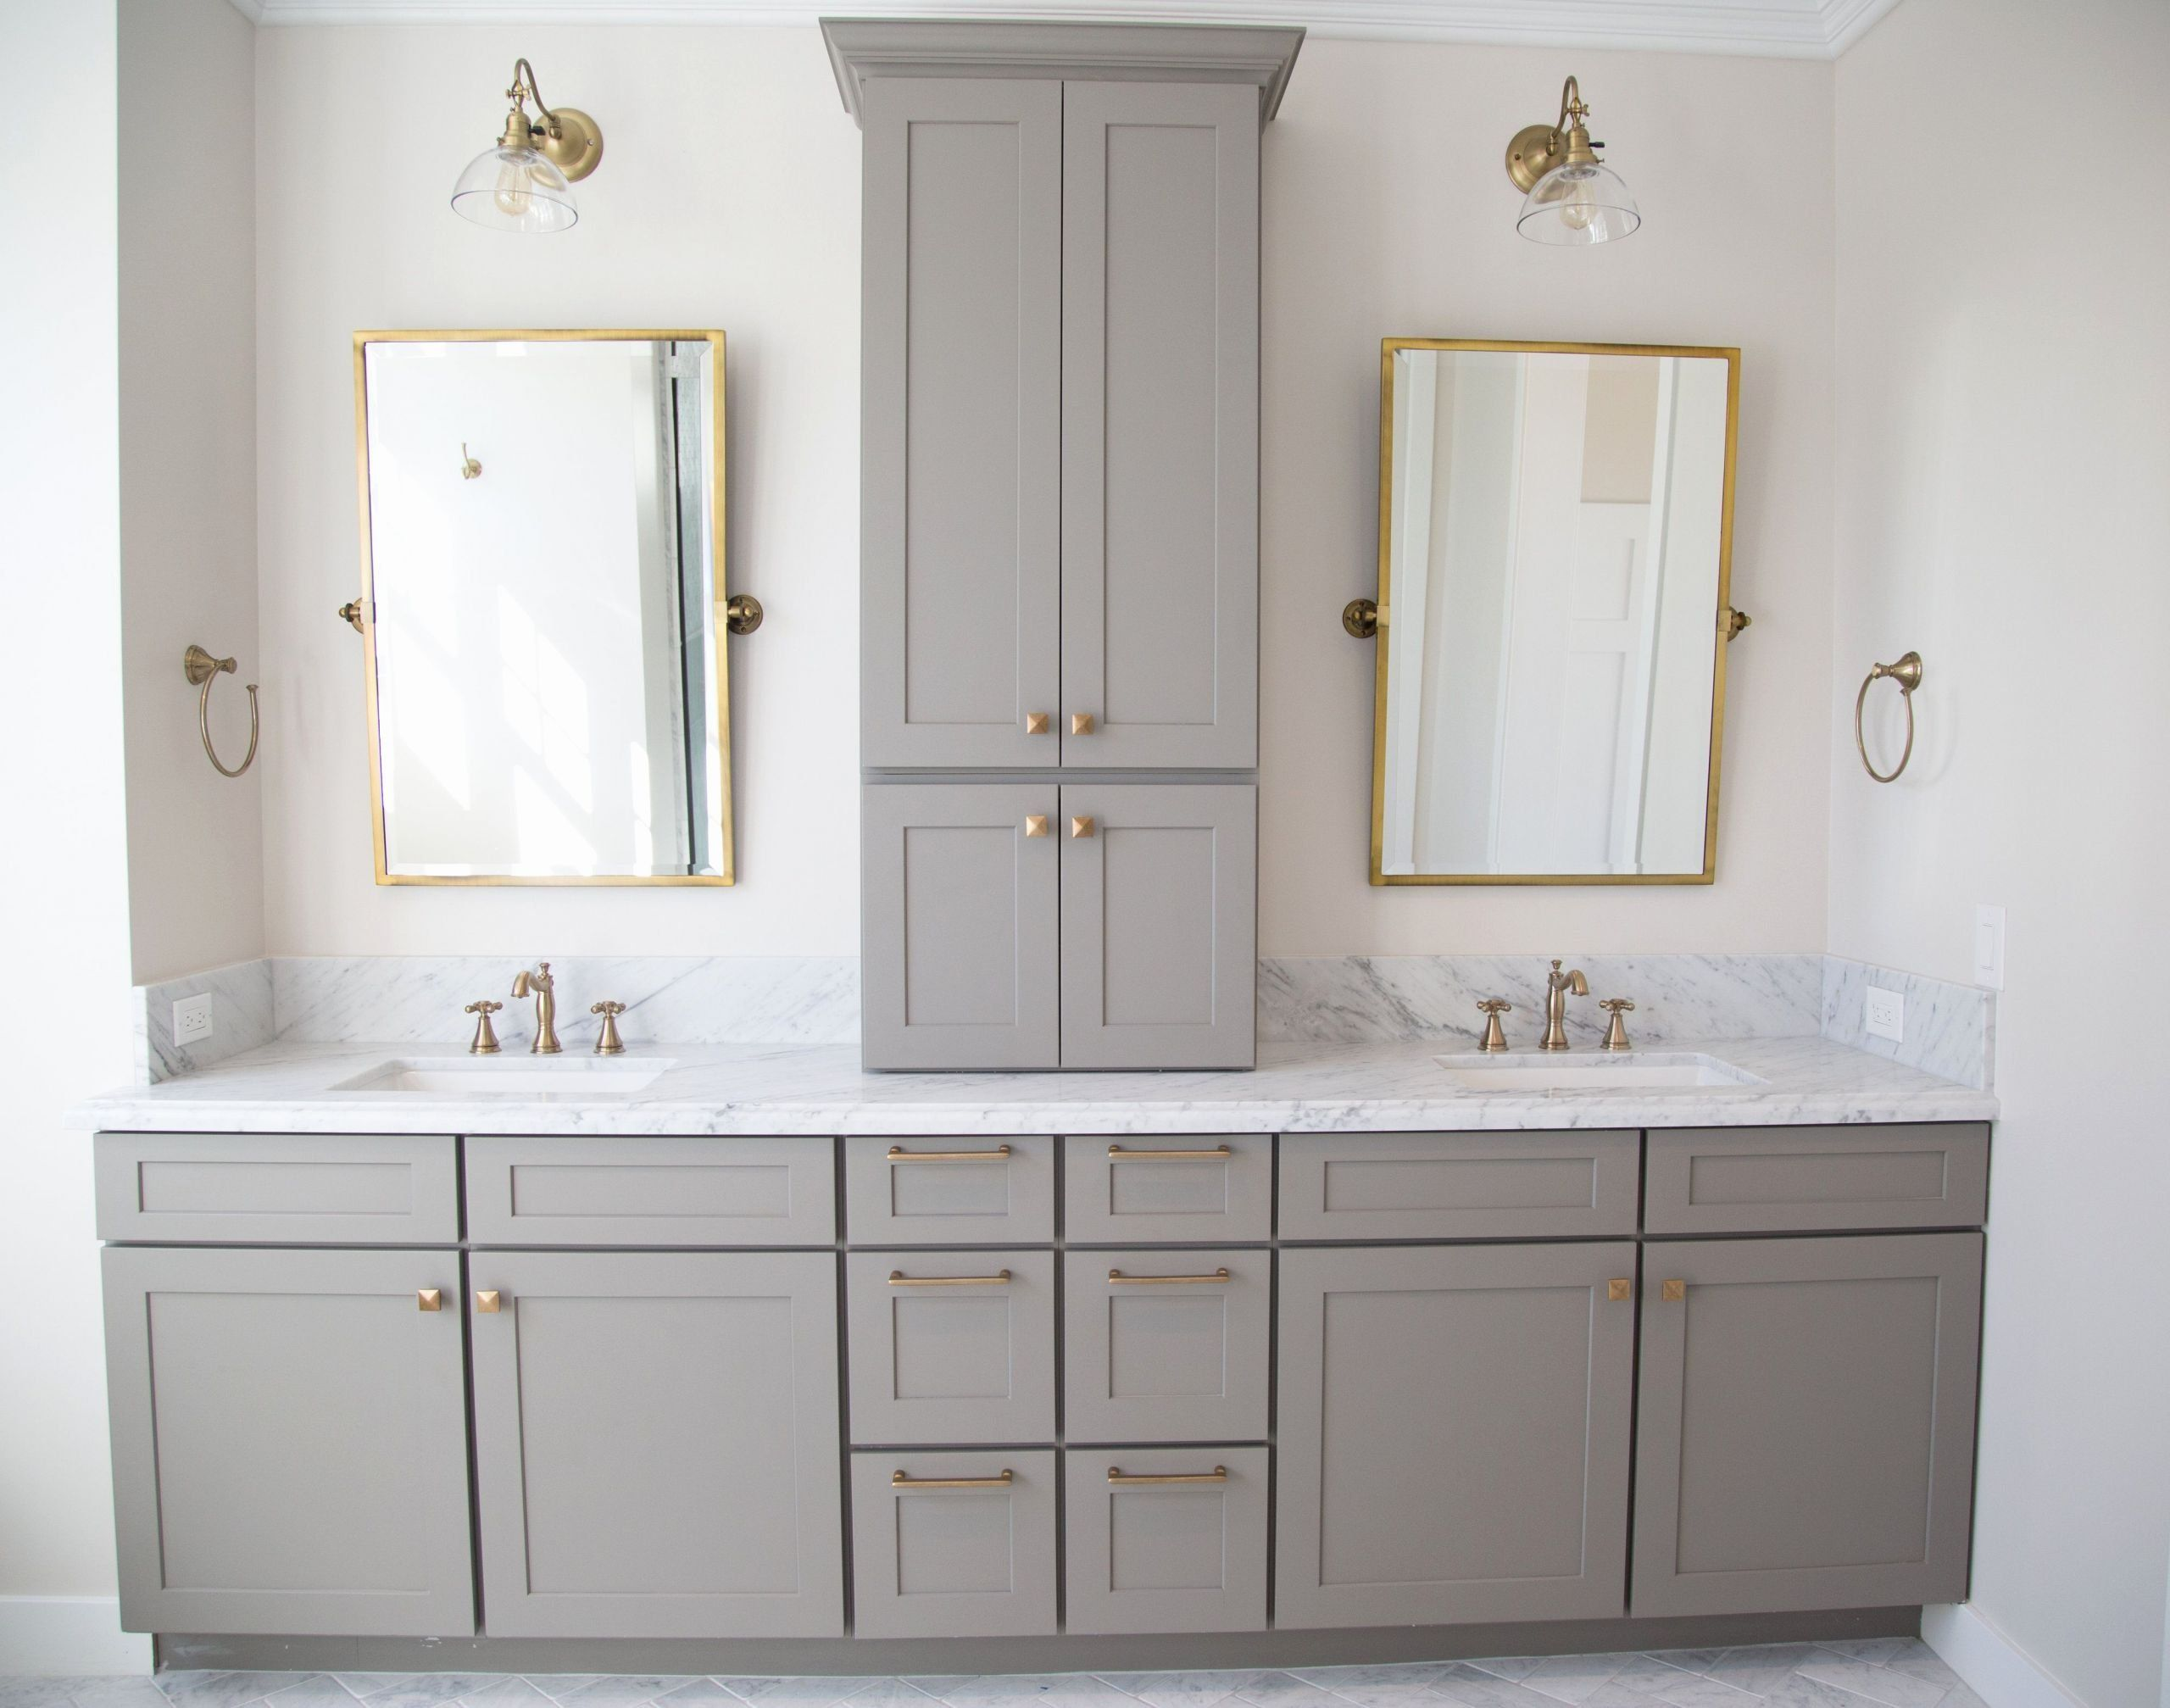 White Carrara Marble Bathroom Ideas Lovely Carrara Marble ...